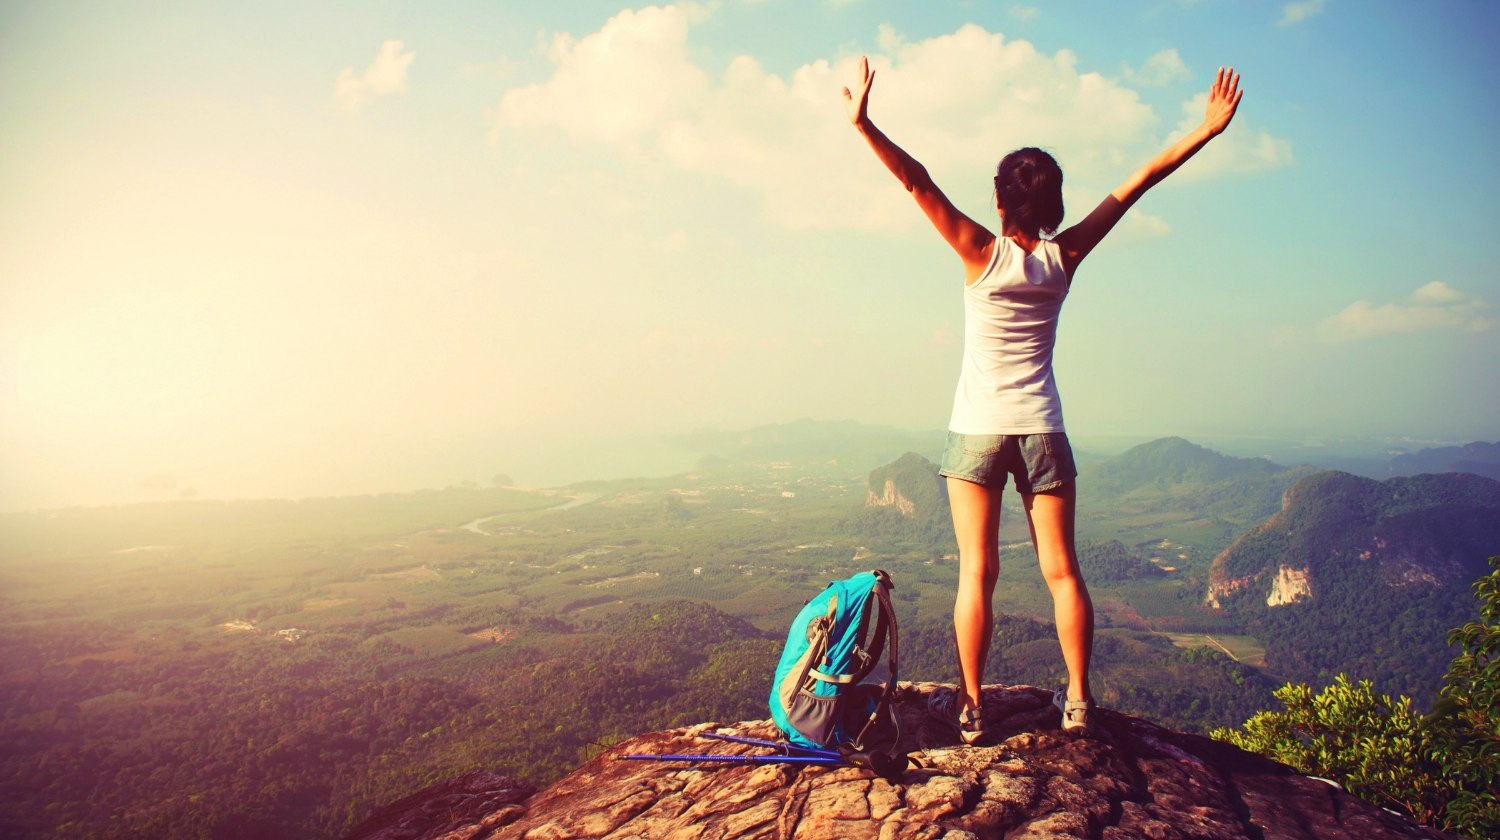 Mental Habit #5 for reaching your TRUE potential: Practice self-study and self-growth